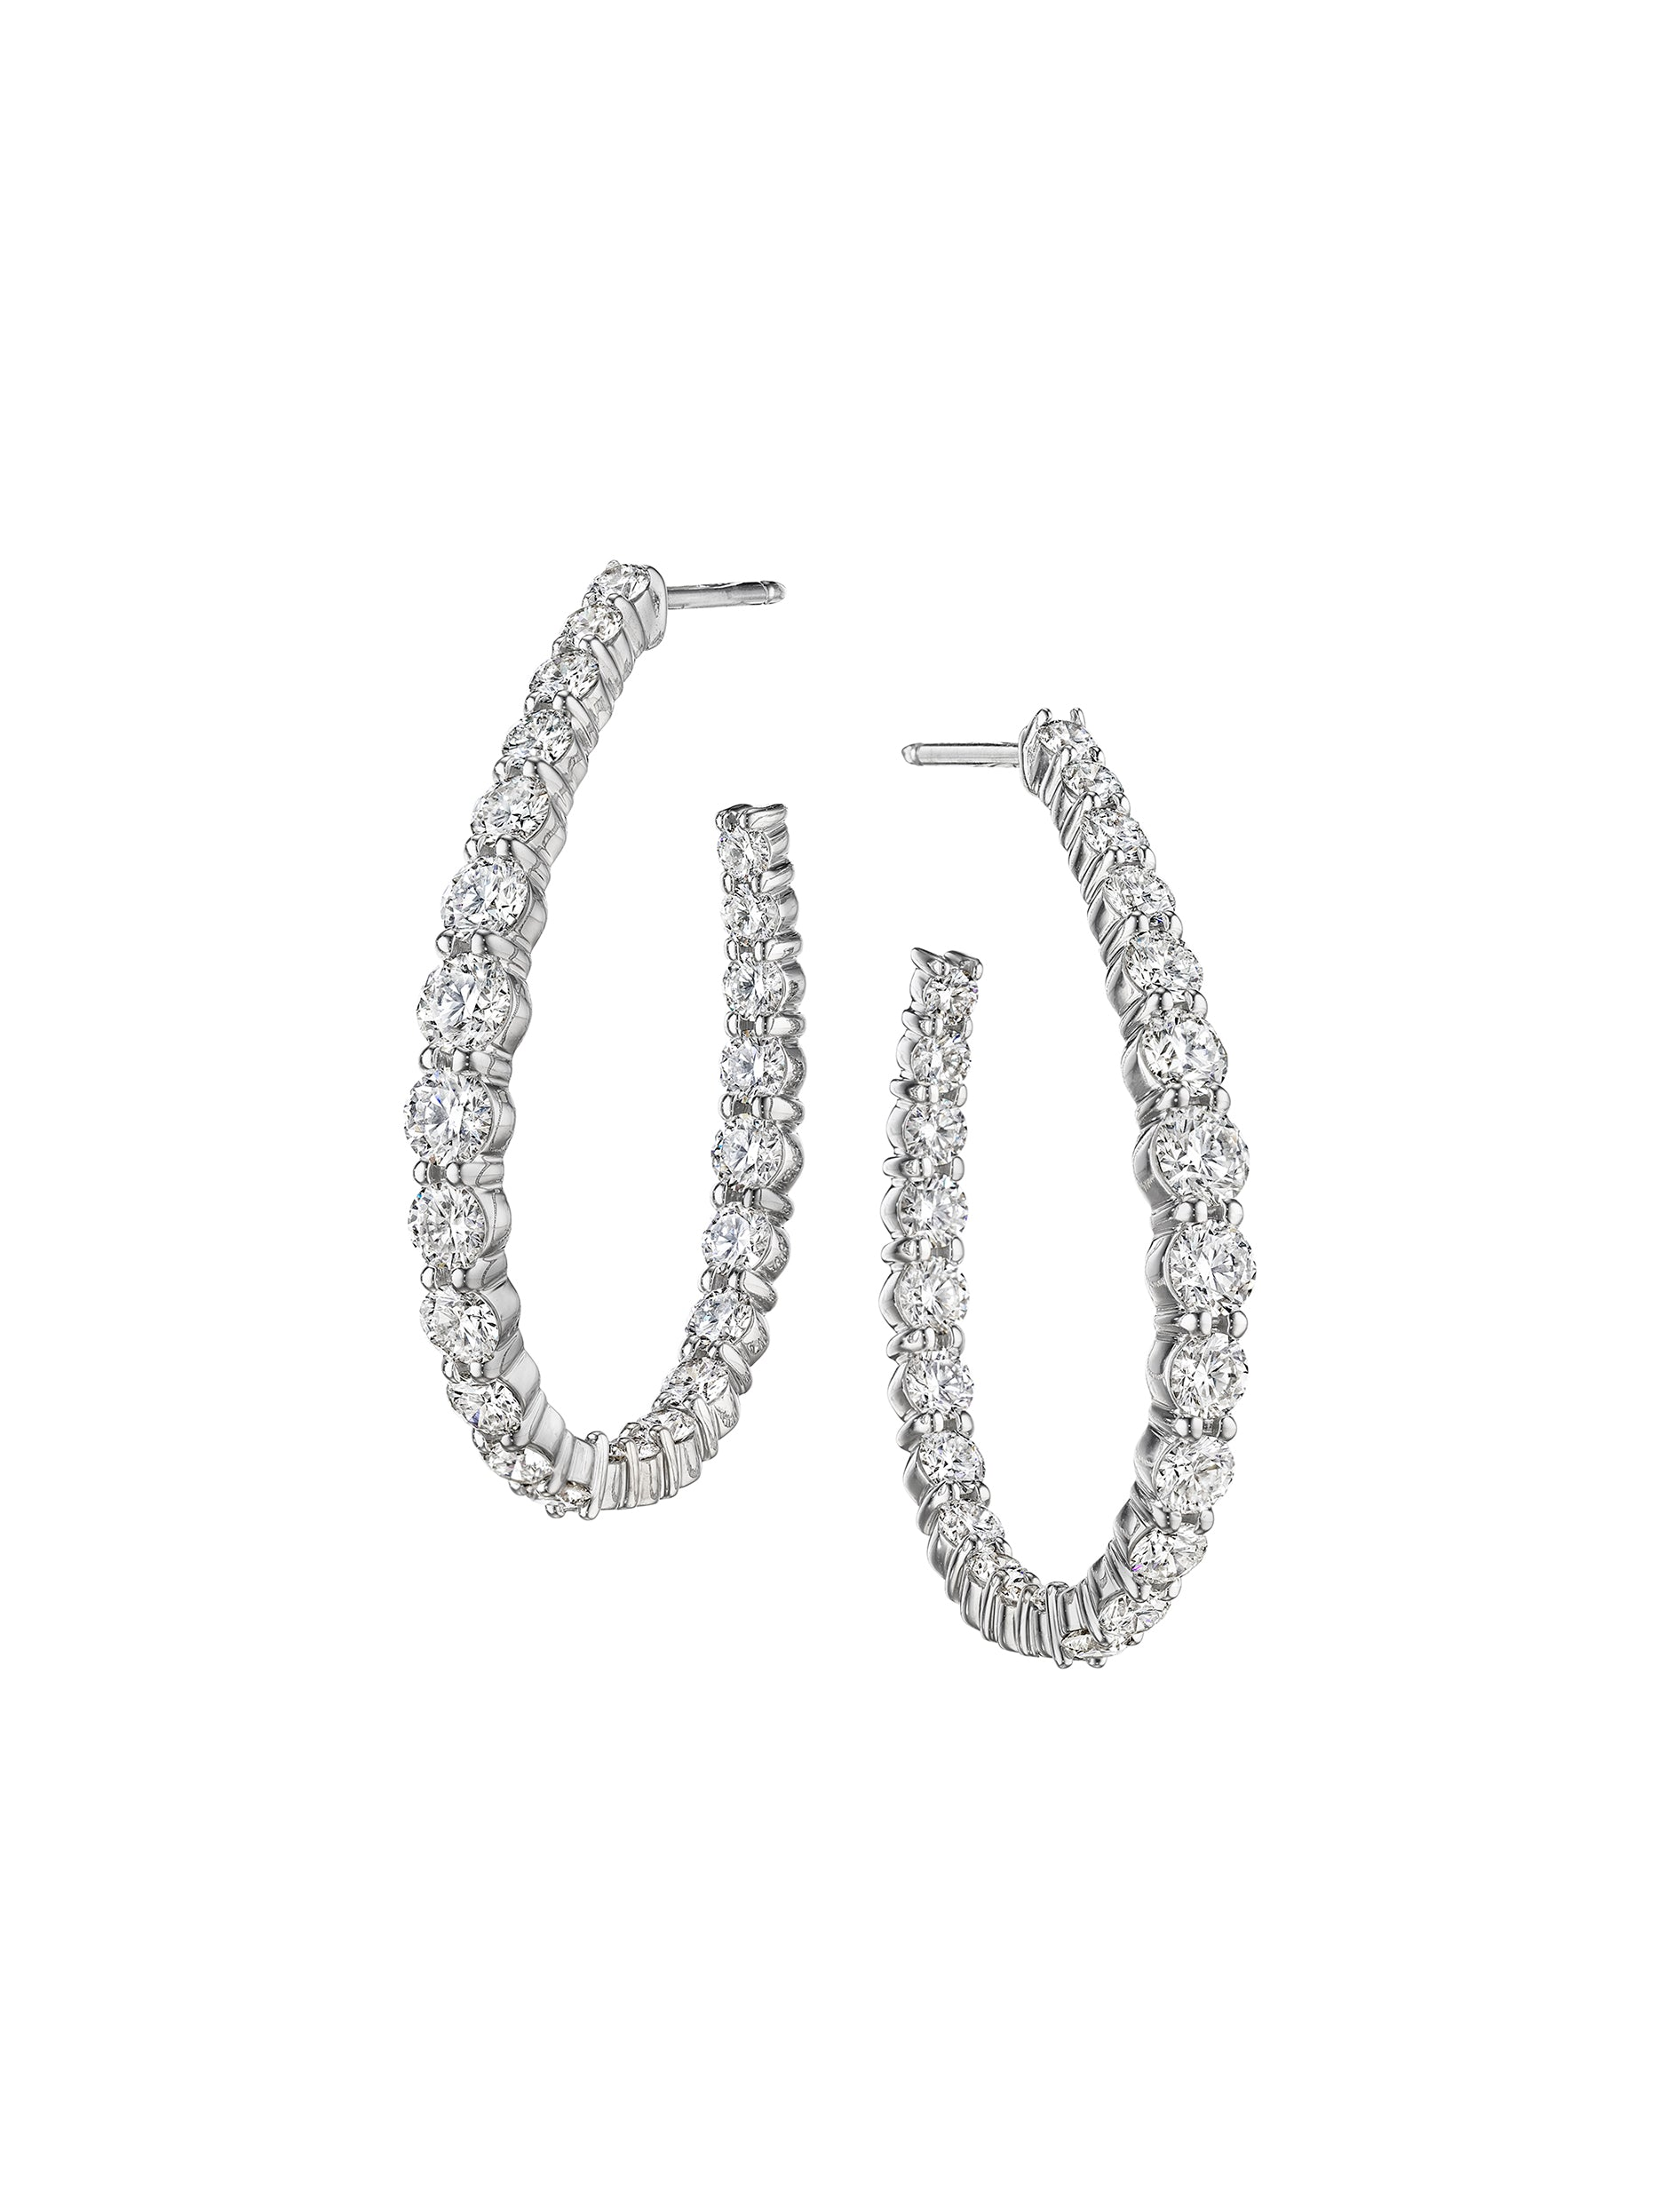 Signature Pear Shape Diamond Hoops 1.5""